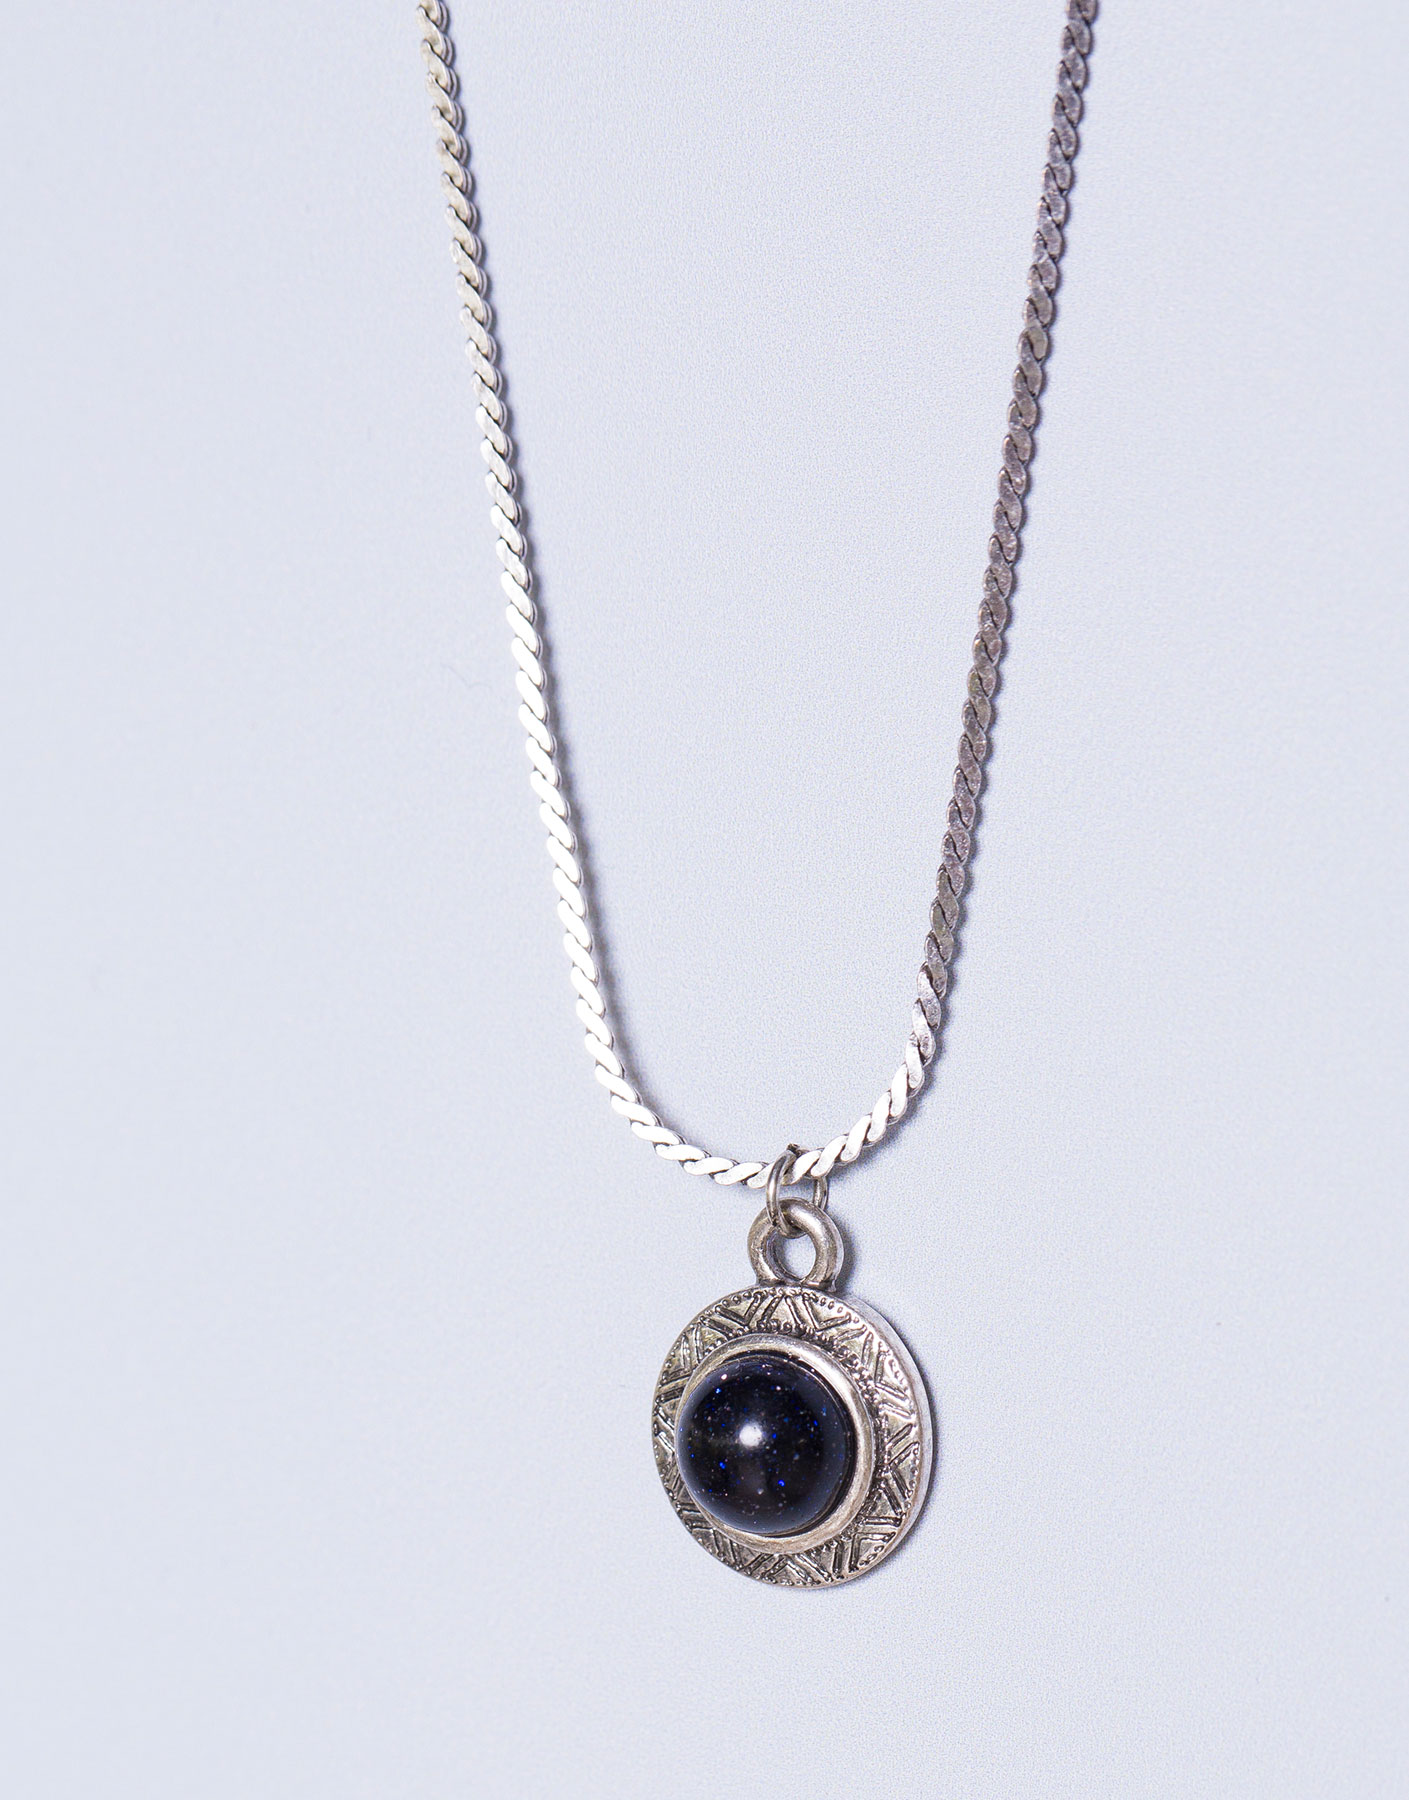 Circular stone necklace